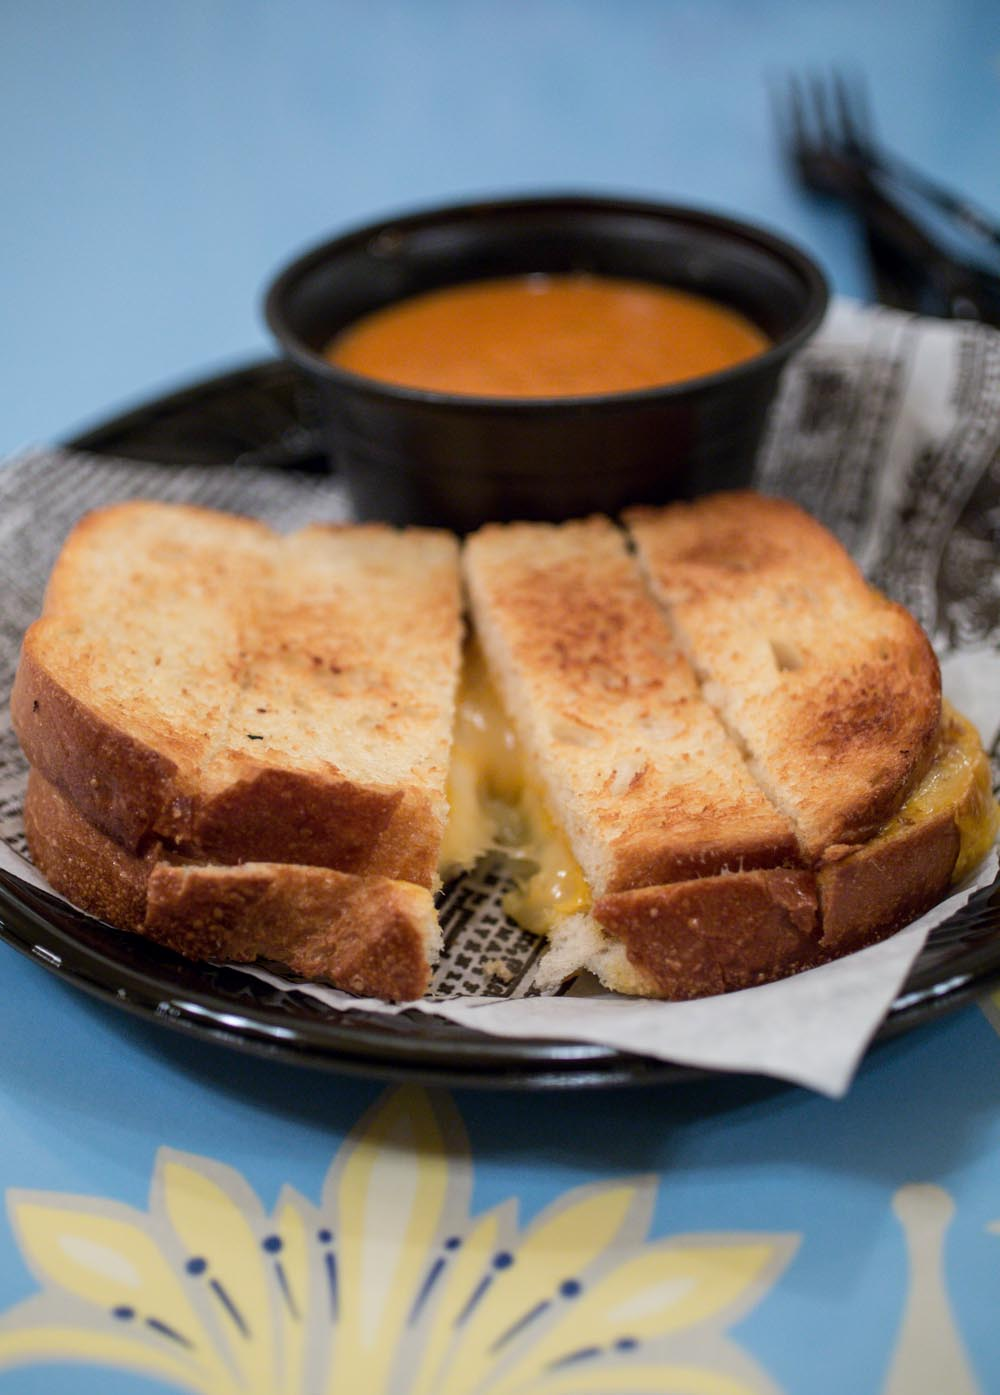 Disneyland Holly Jolly Bakery Cafe Tomato Basil Soup and Grilled Cheese